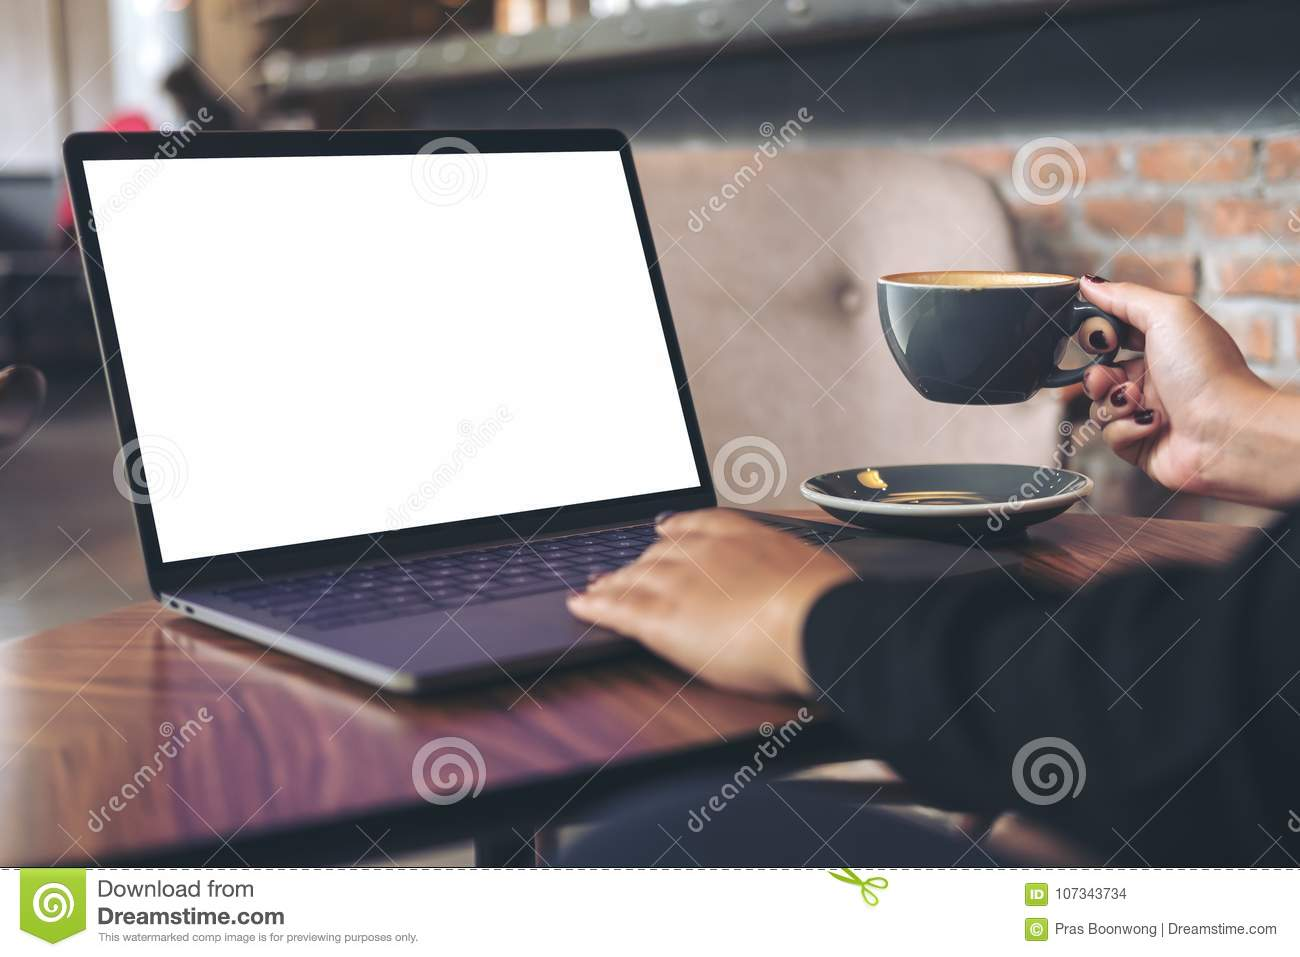 Mockup Image Of A Businesswoman Using Laptop With Blank White